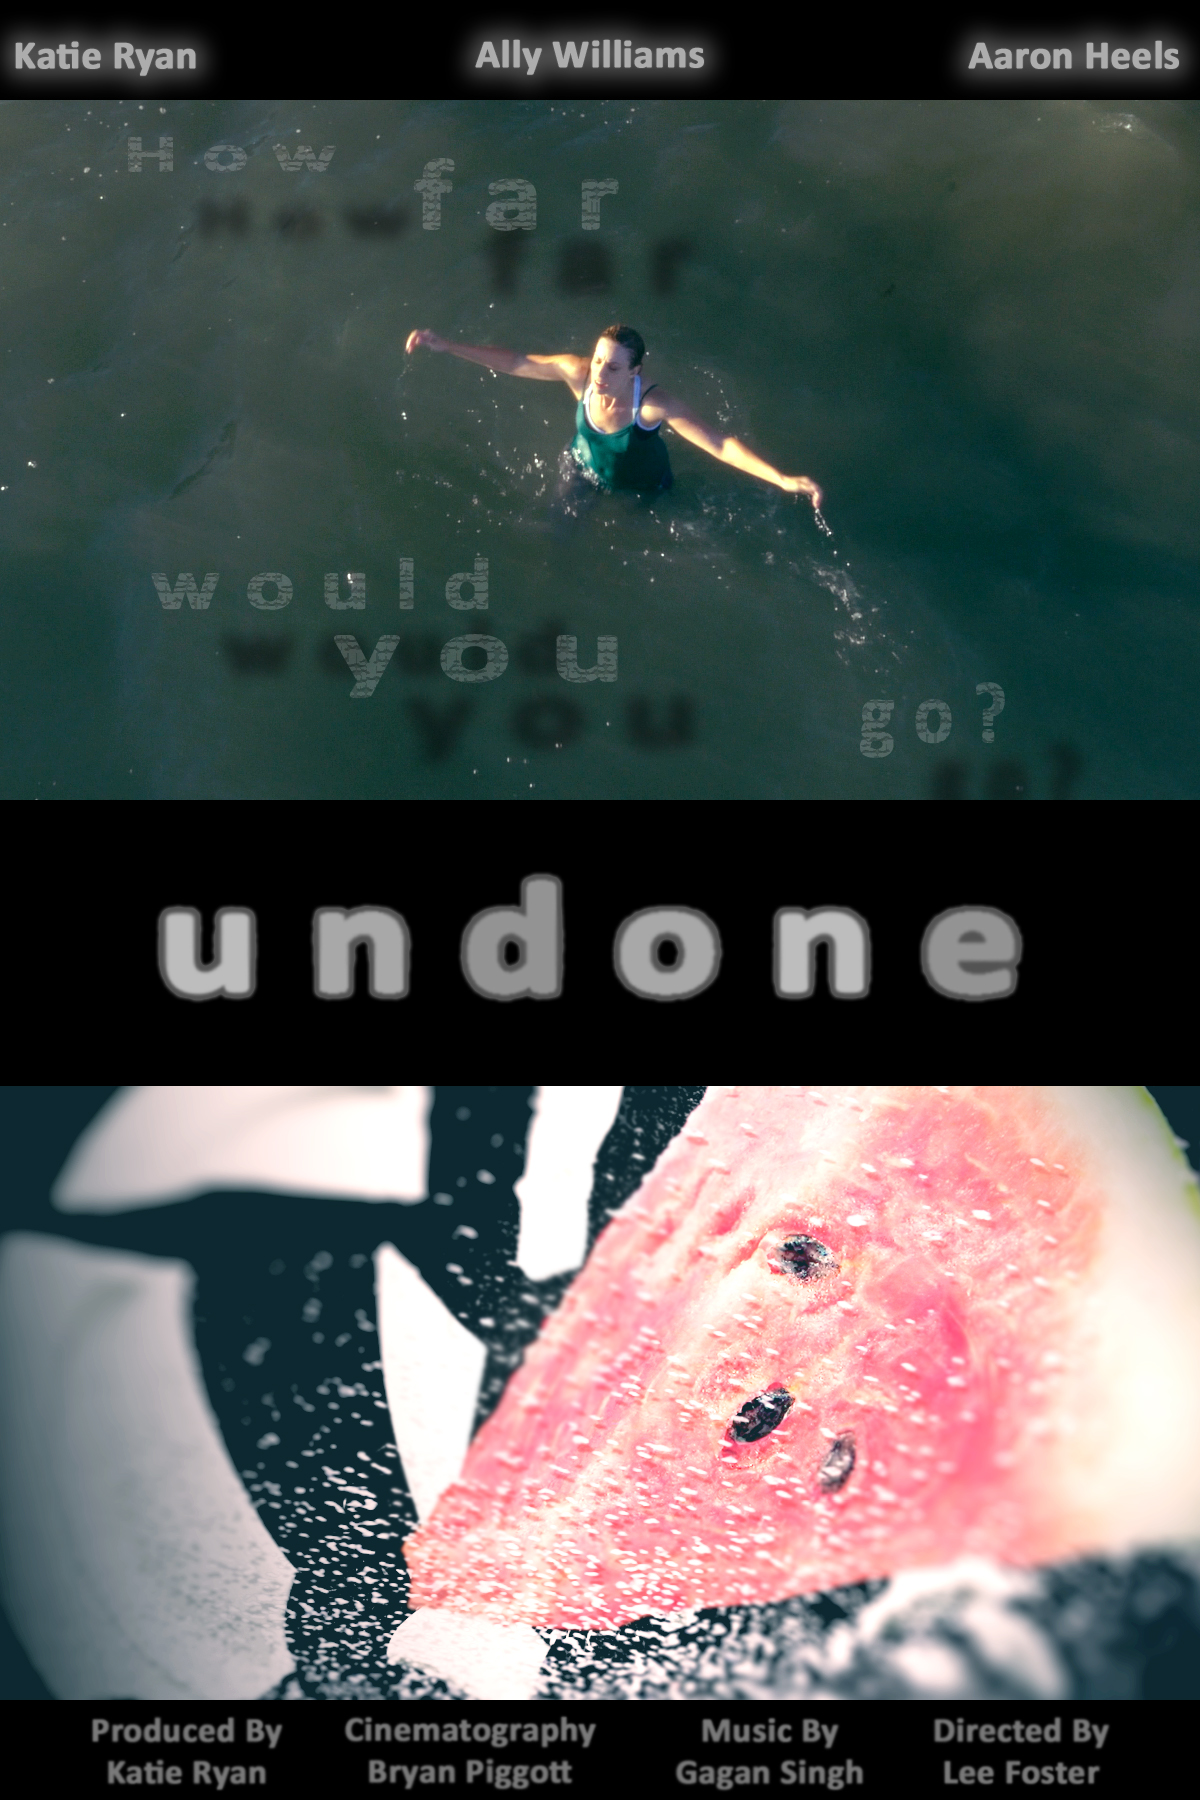 """UNDONE - SHORT  This was Foster Films' submission for the Toronto 48 Hour Film Race.  Our film was selected as part of the """"Best Of 2016"""" and walked away with two awards:   Best Original Score  for Gagan Singh  and   Best Line Delivery  for Aaron Heels."""